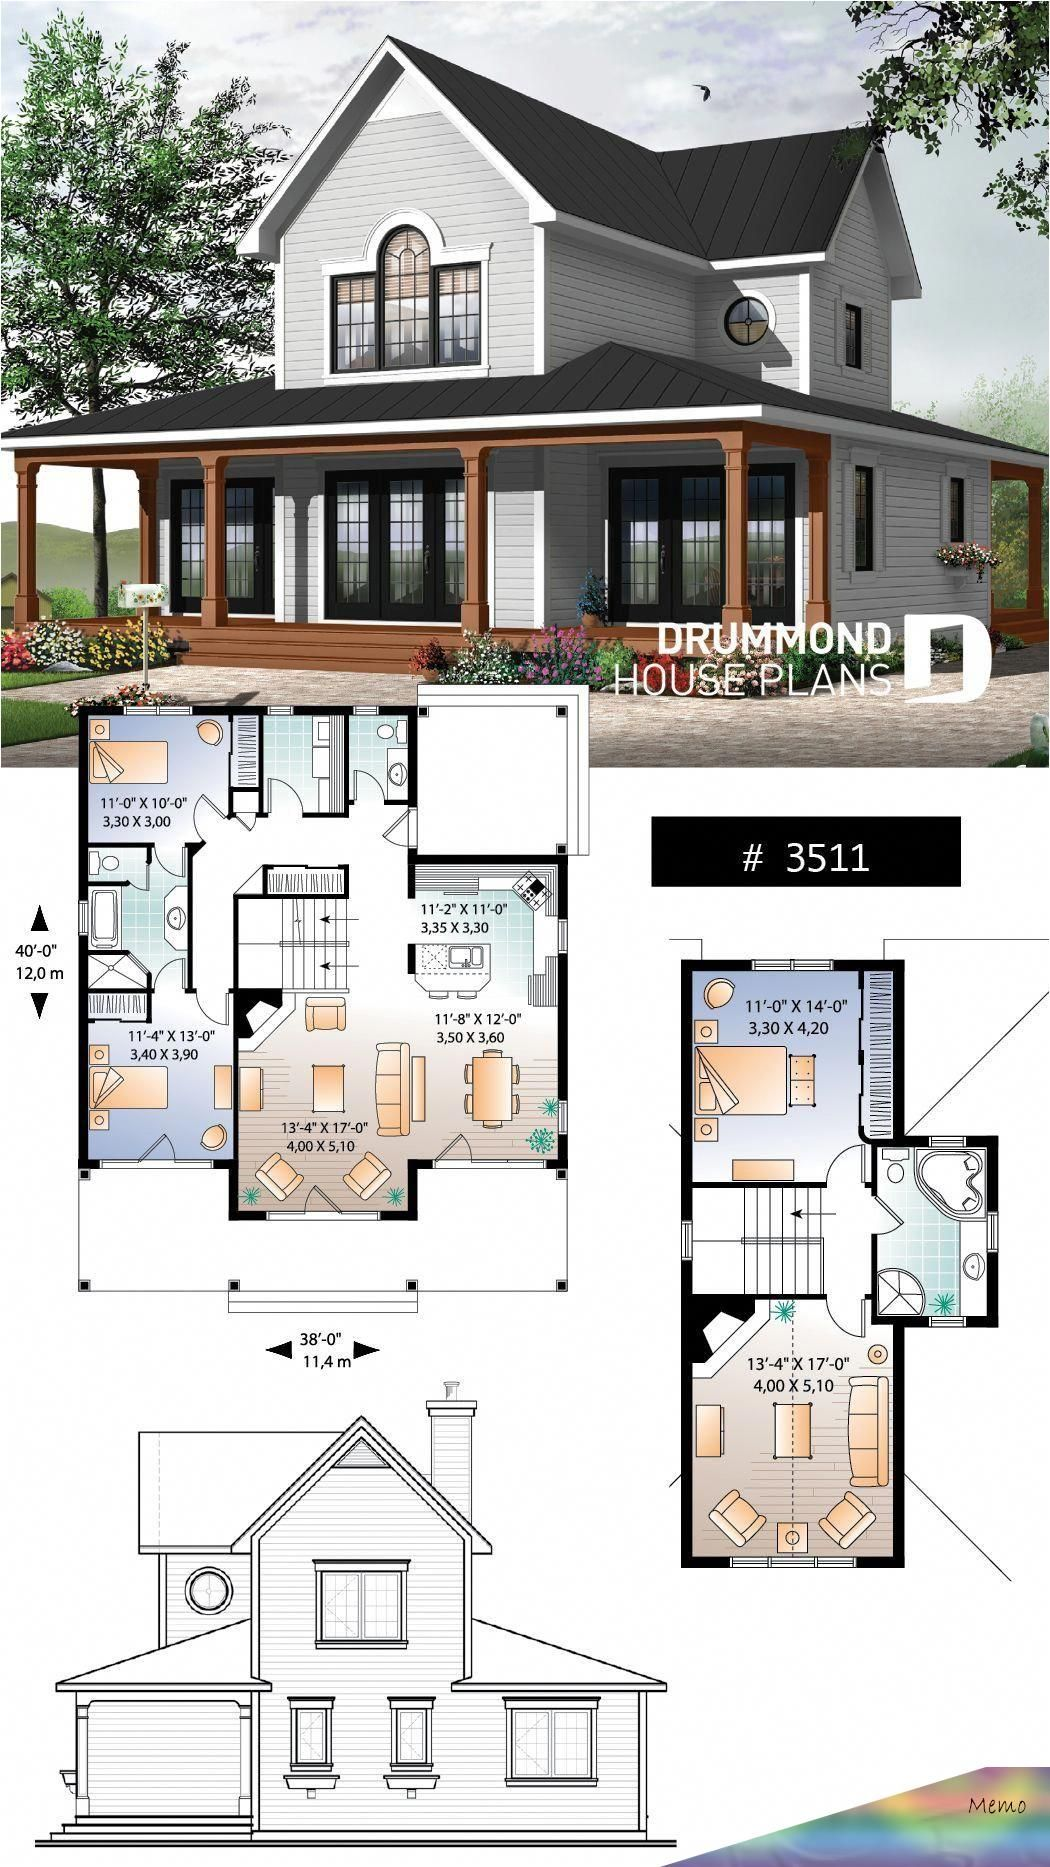 Pin By Modesta Kuhn On Sims In 2020 Family House Plans Lakefront Homes House Blueprints